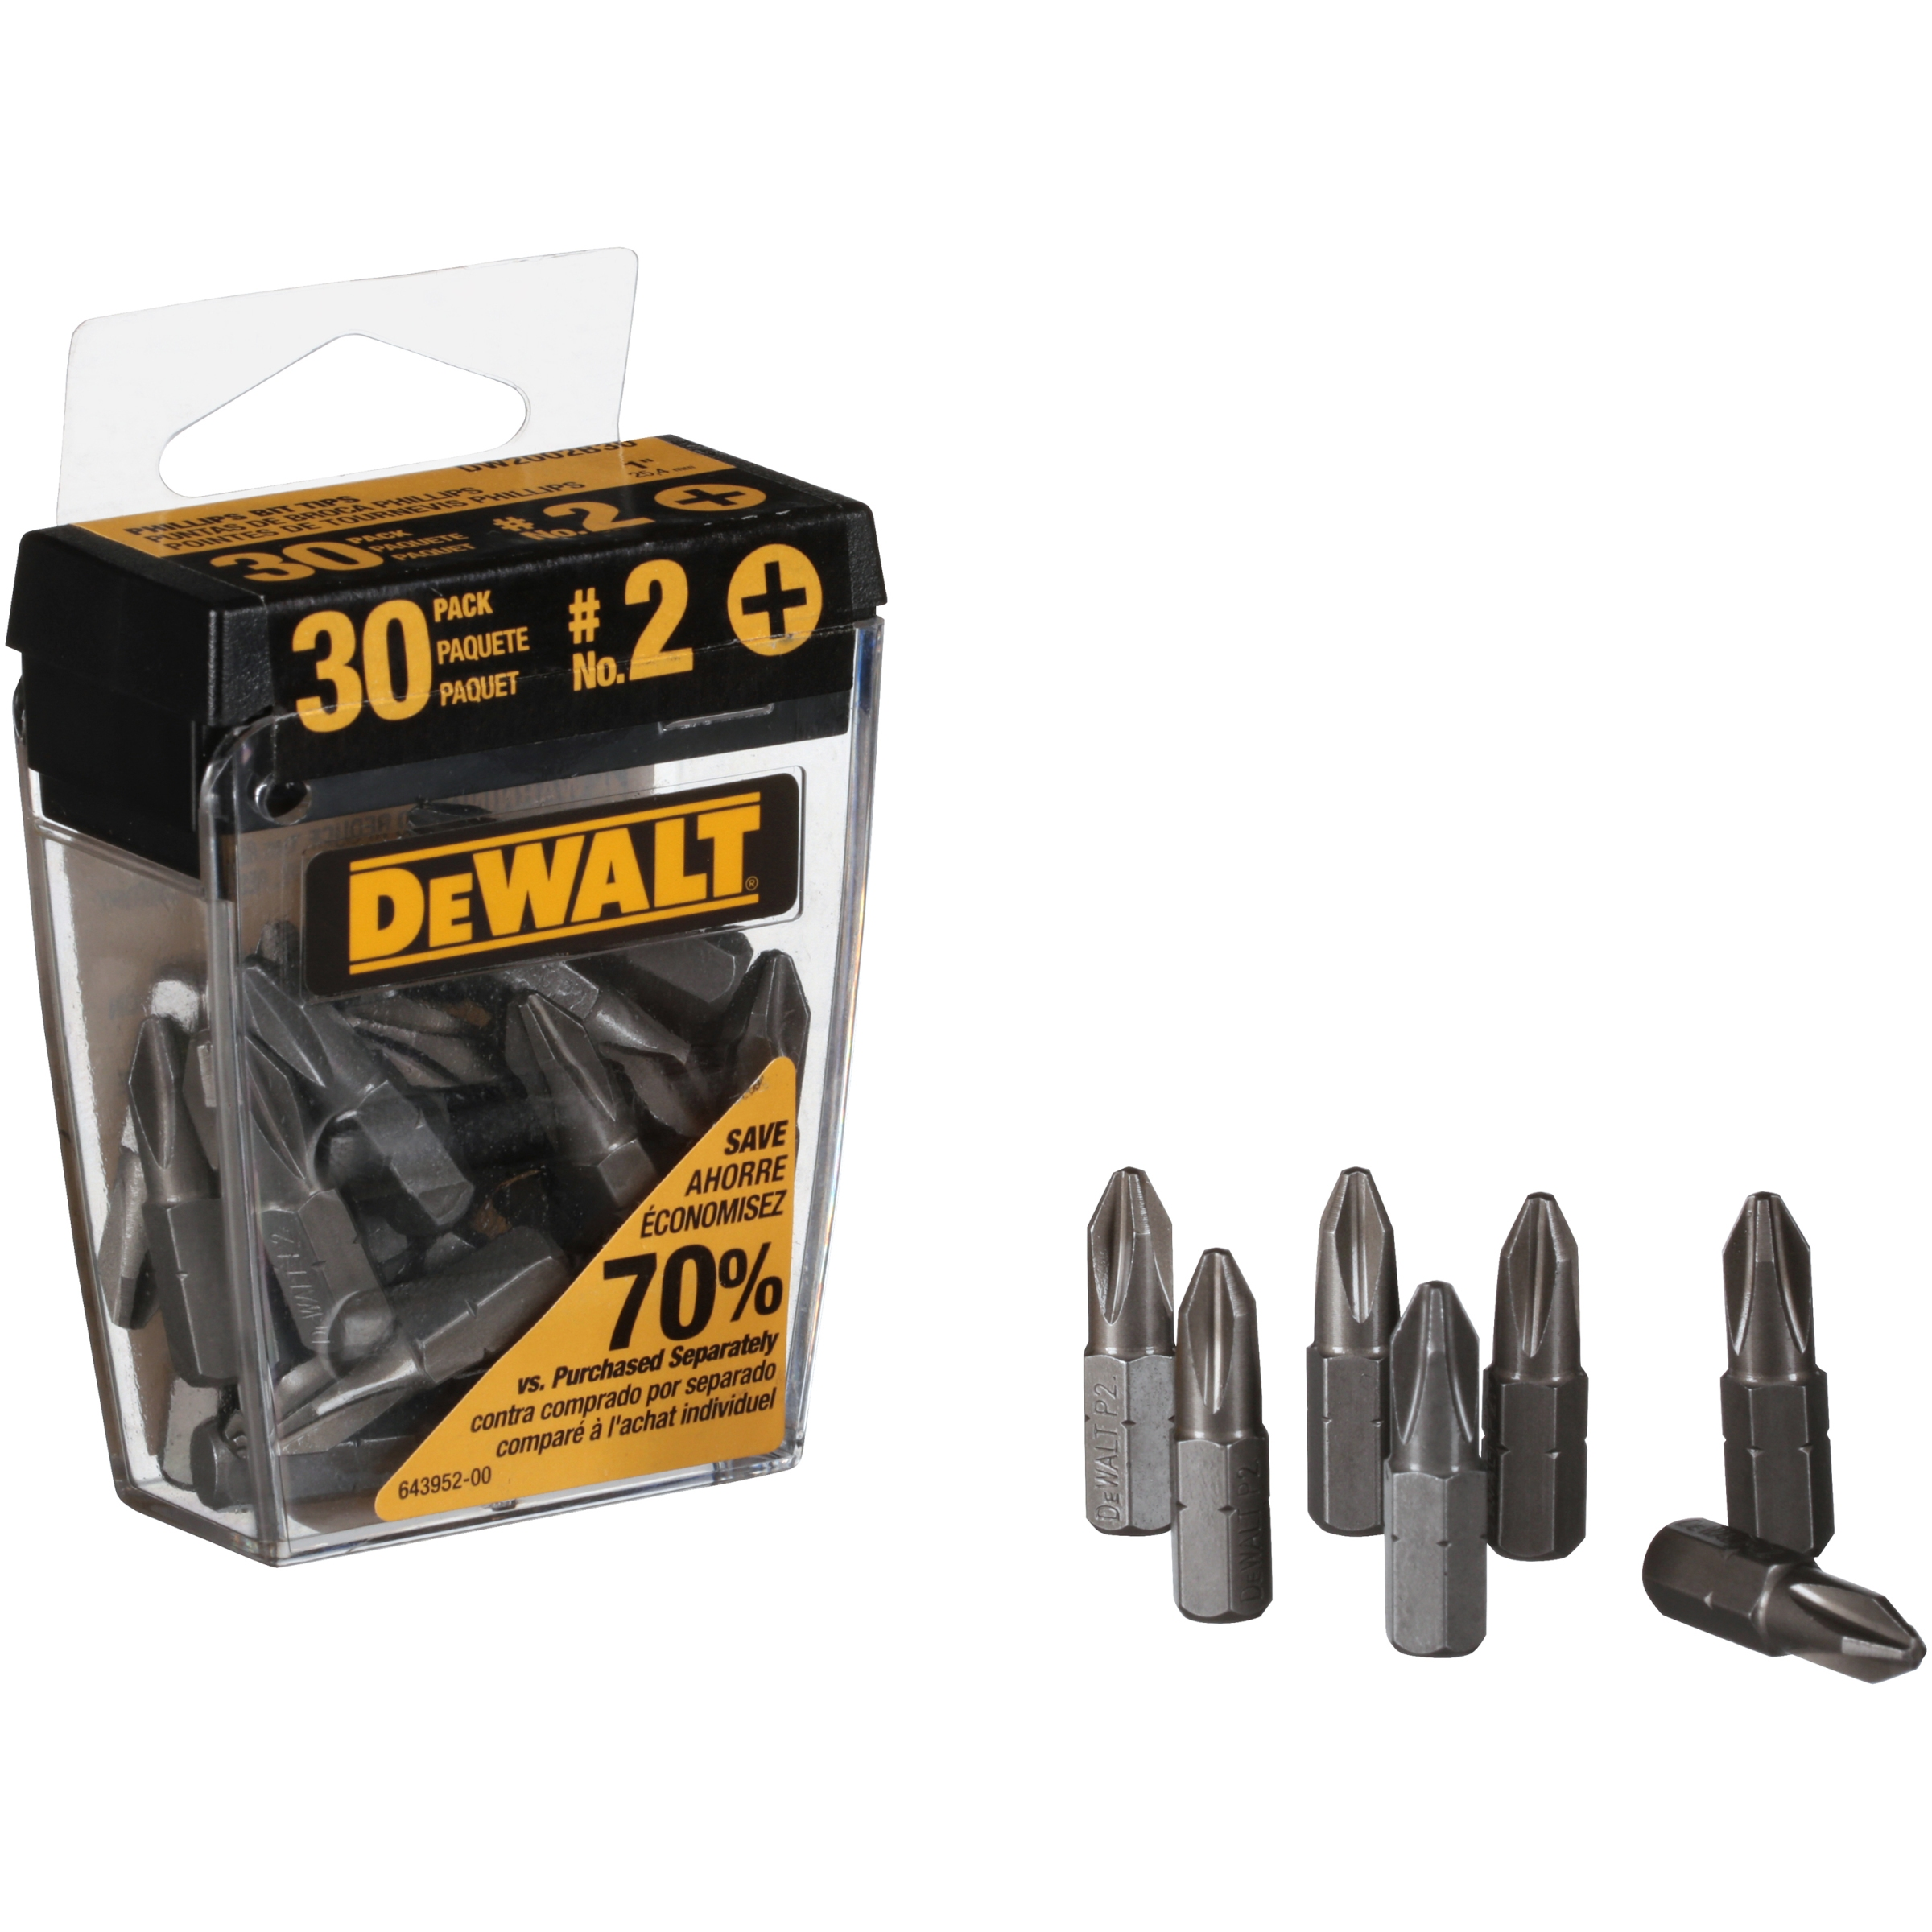 Power Drill Bits Tips Shock Resistant DW2002B30 30 DEWALT 2 Phillips Head 1 in